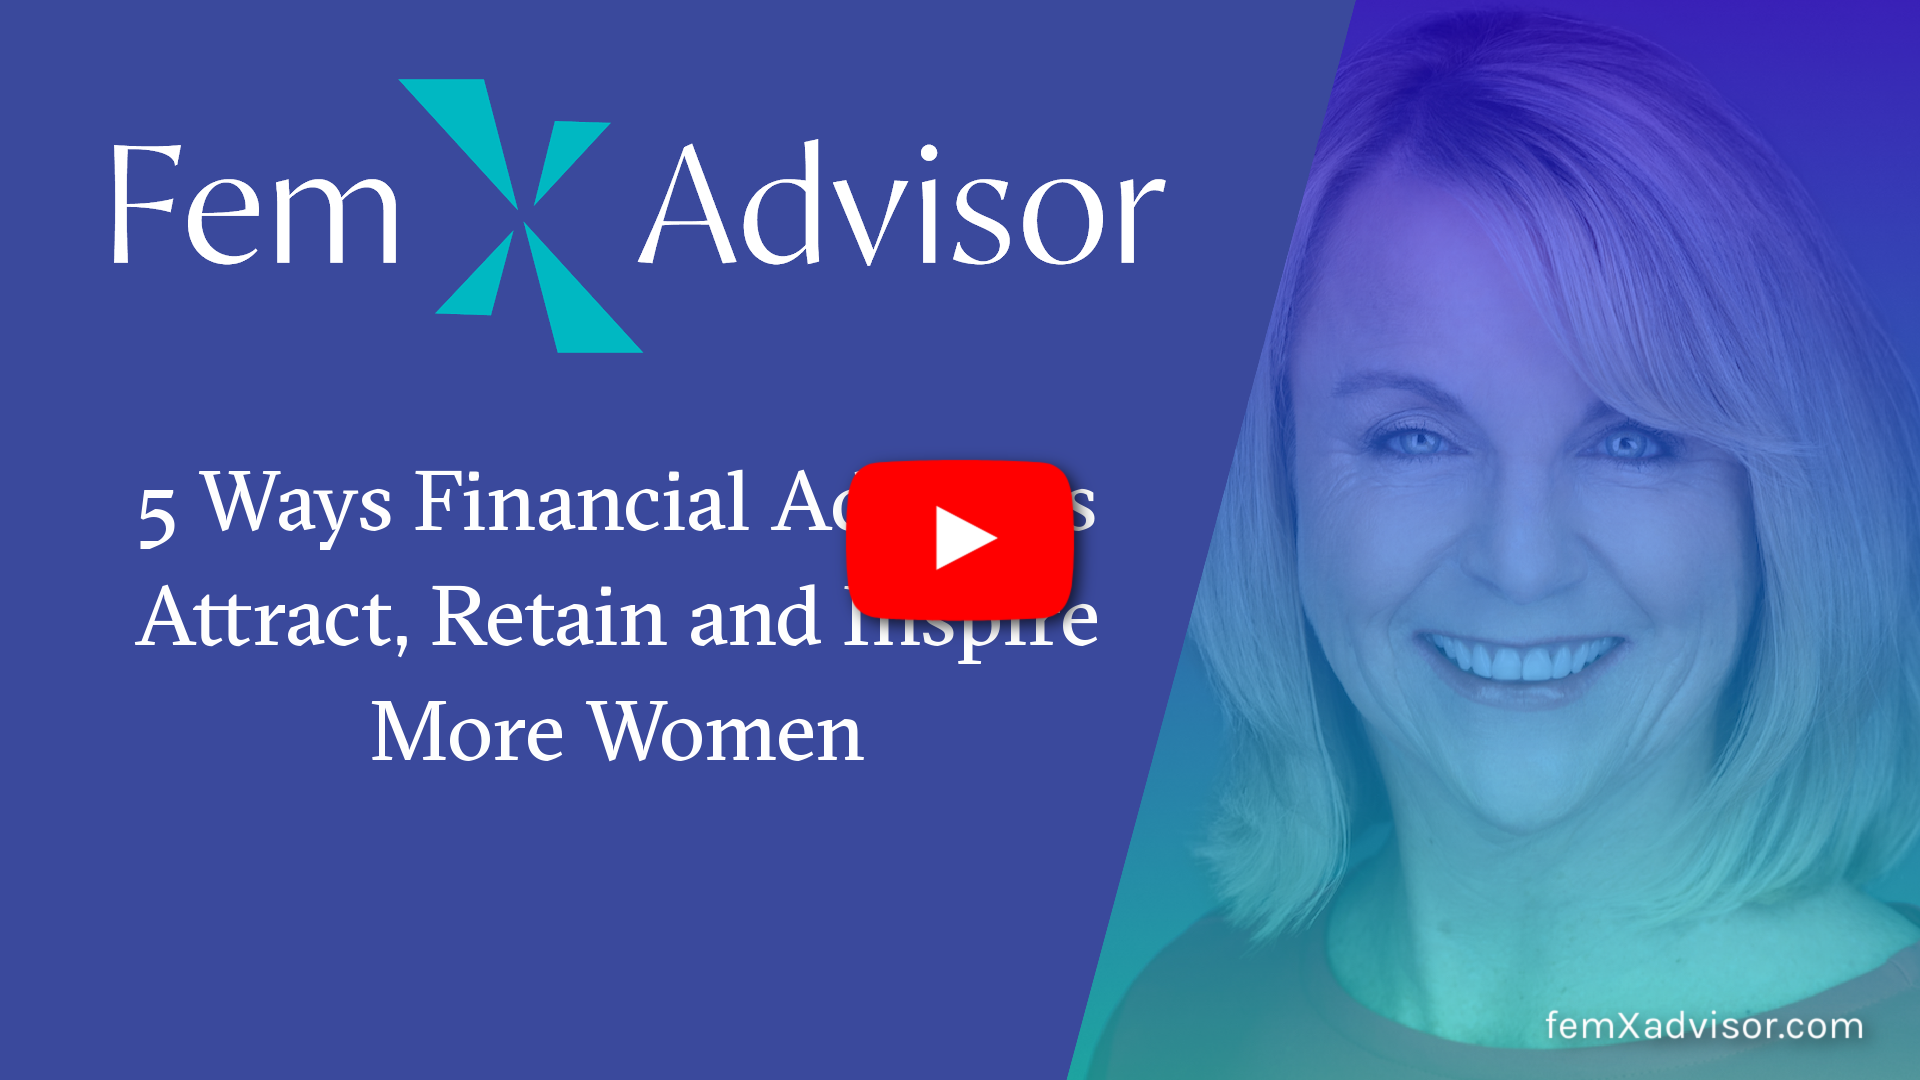 5 Ways Financial Advisors Attract, Retain And Inspire More Women